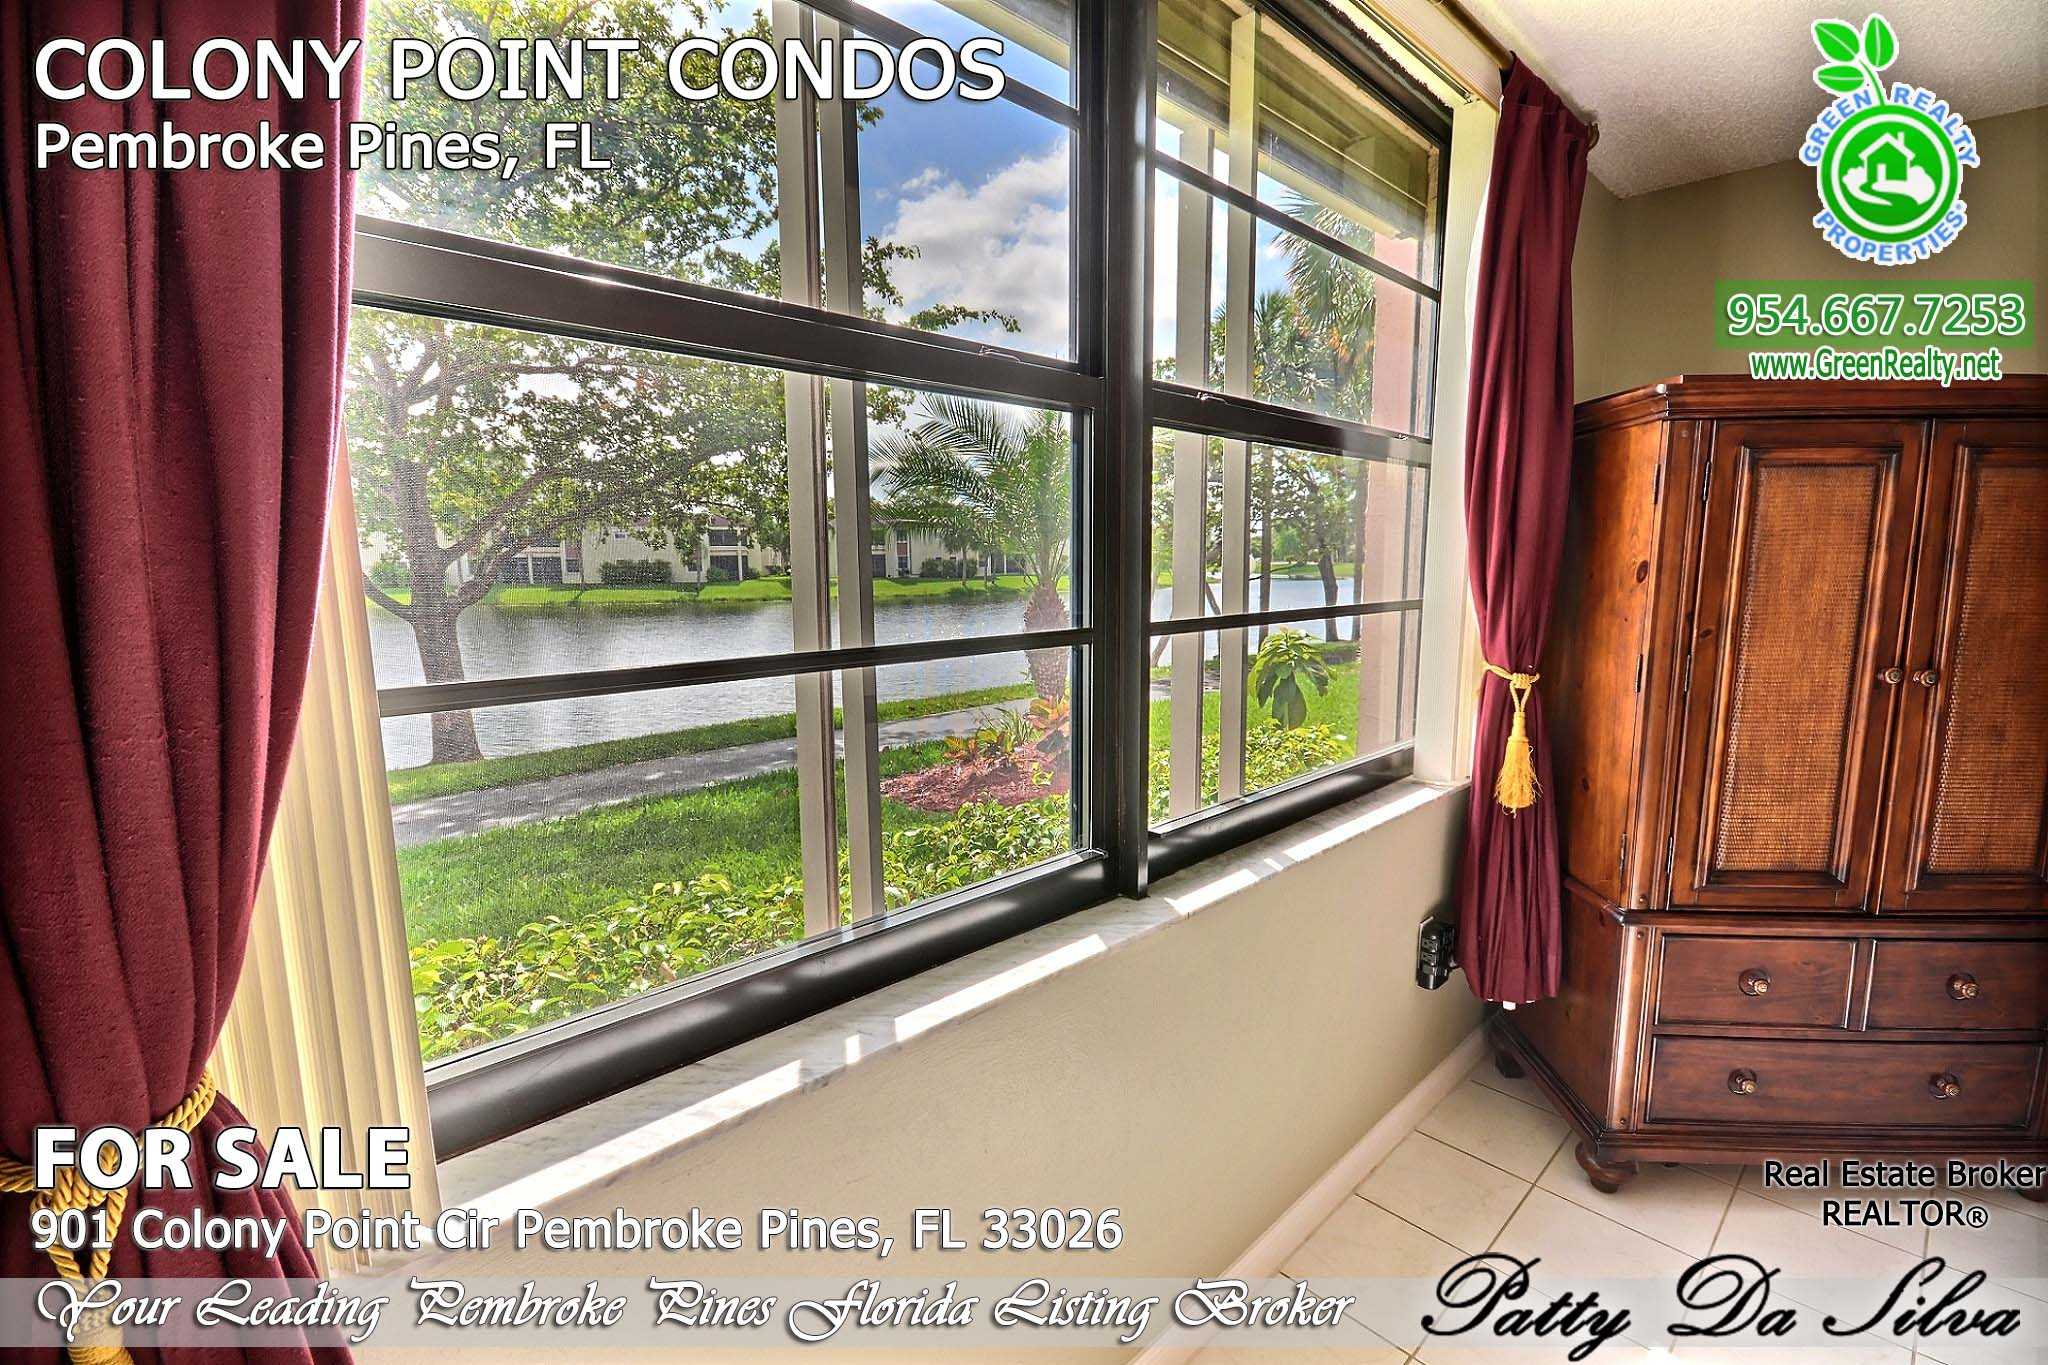 901 Colony Point Cir, Unit 112 - Pembroke Pines Homes For Sale (17)